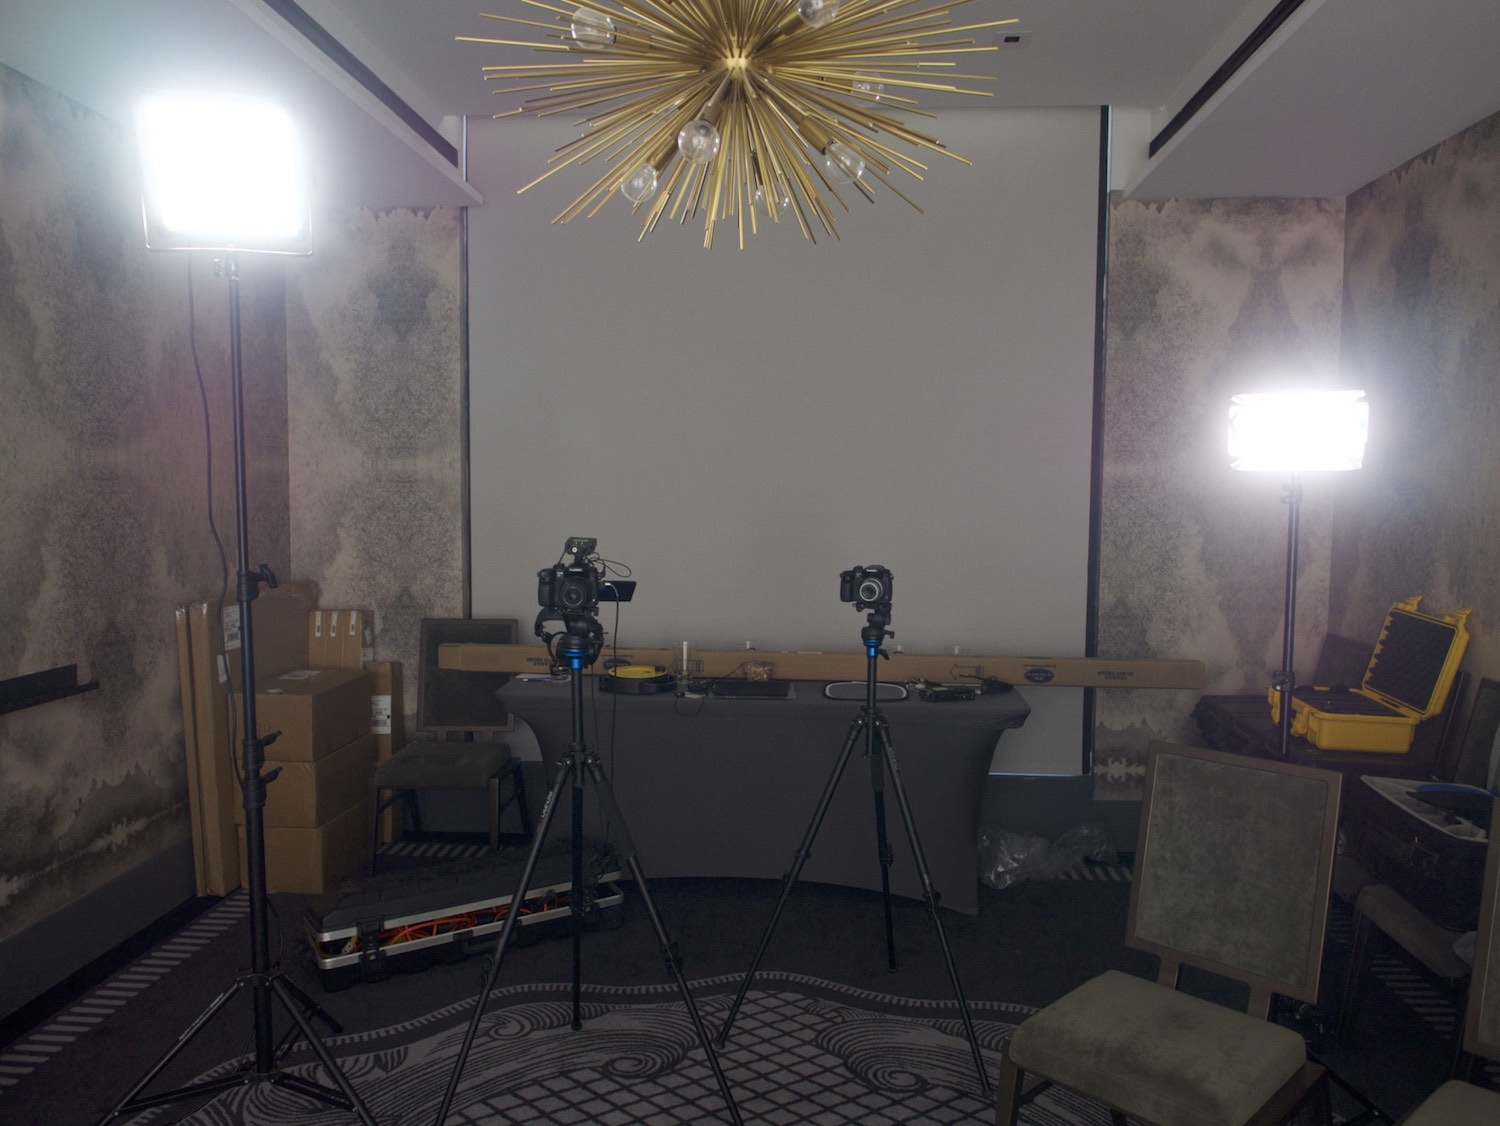 Behind the scenes interview showing camera and lights